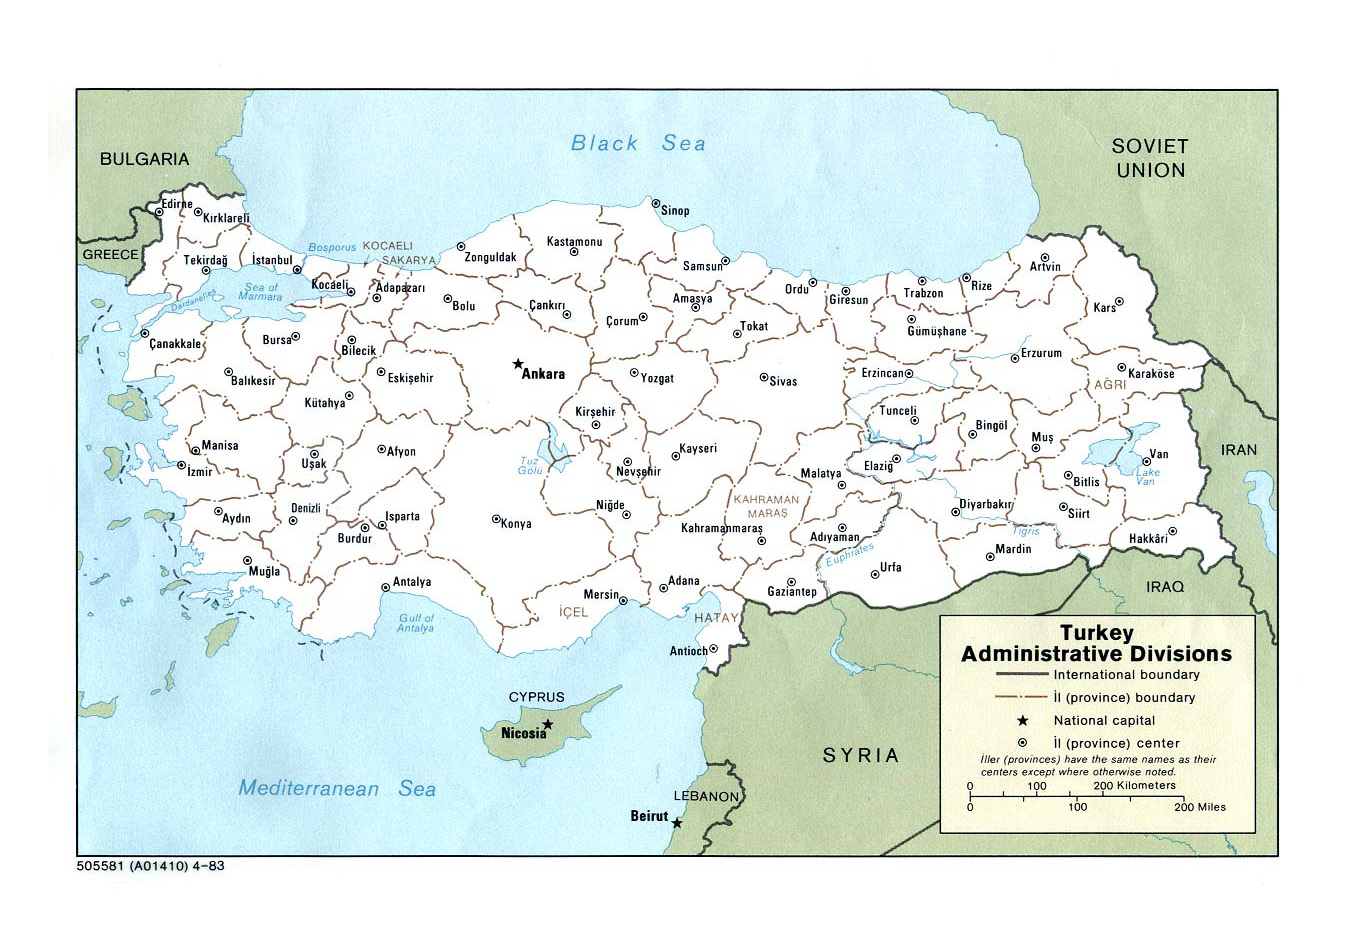 Detailed administrative divisions map of Turkey 1983 Turkey